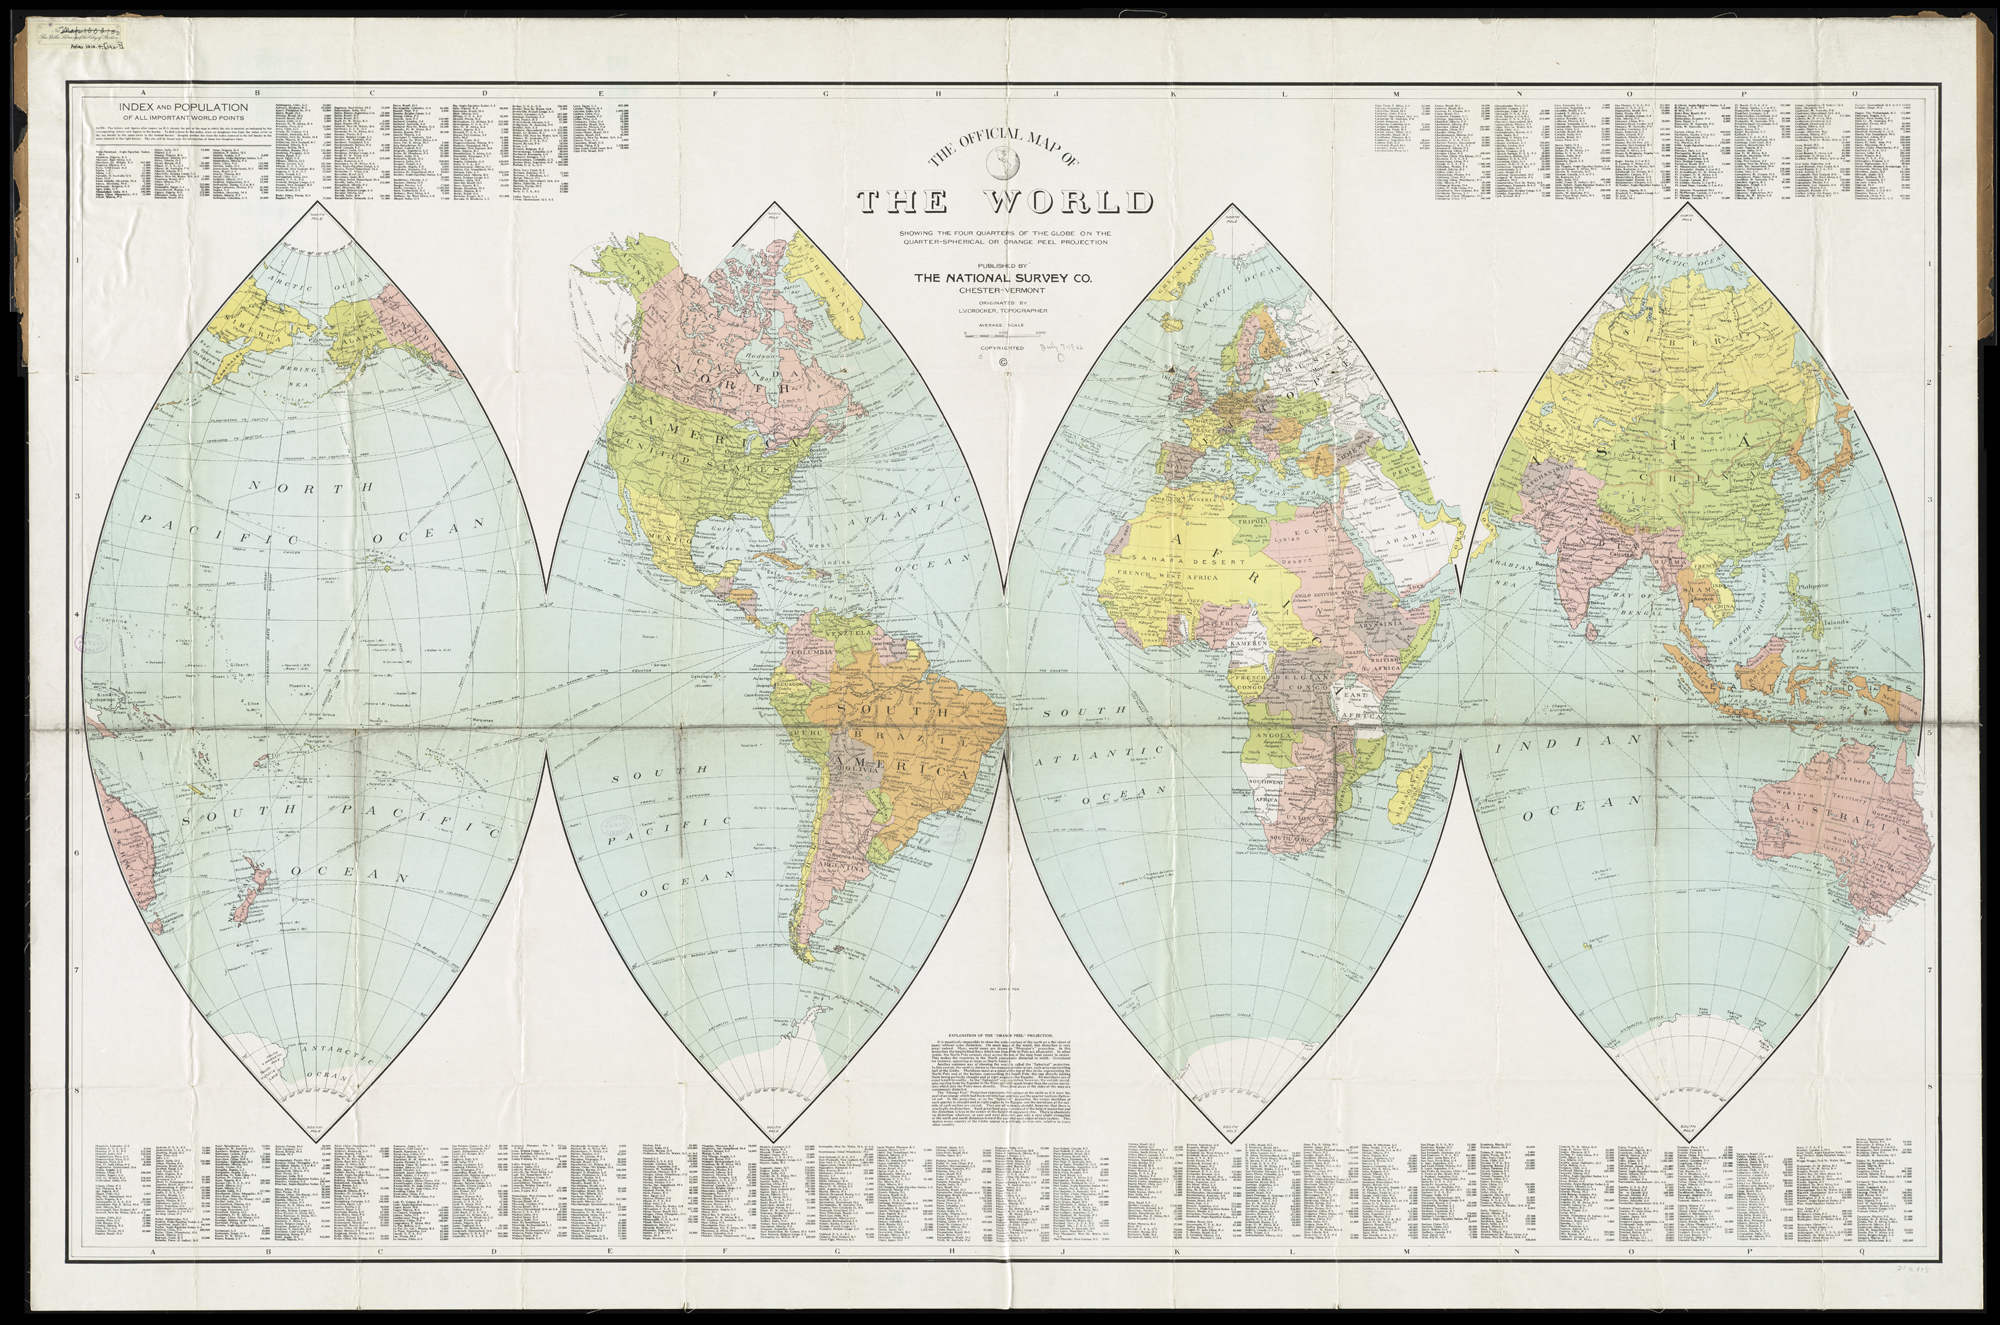 Spherical World Map.File The Official Map Of The World Showing The Four Quarters Of